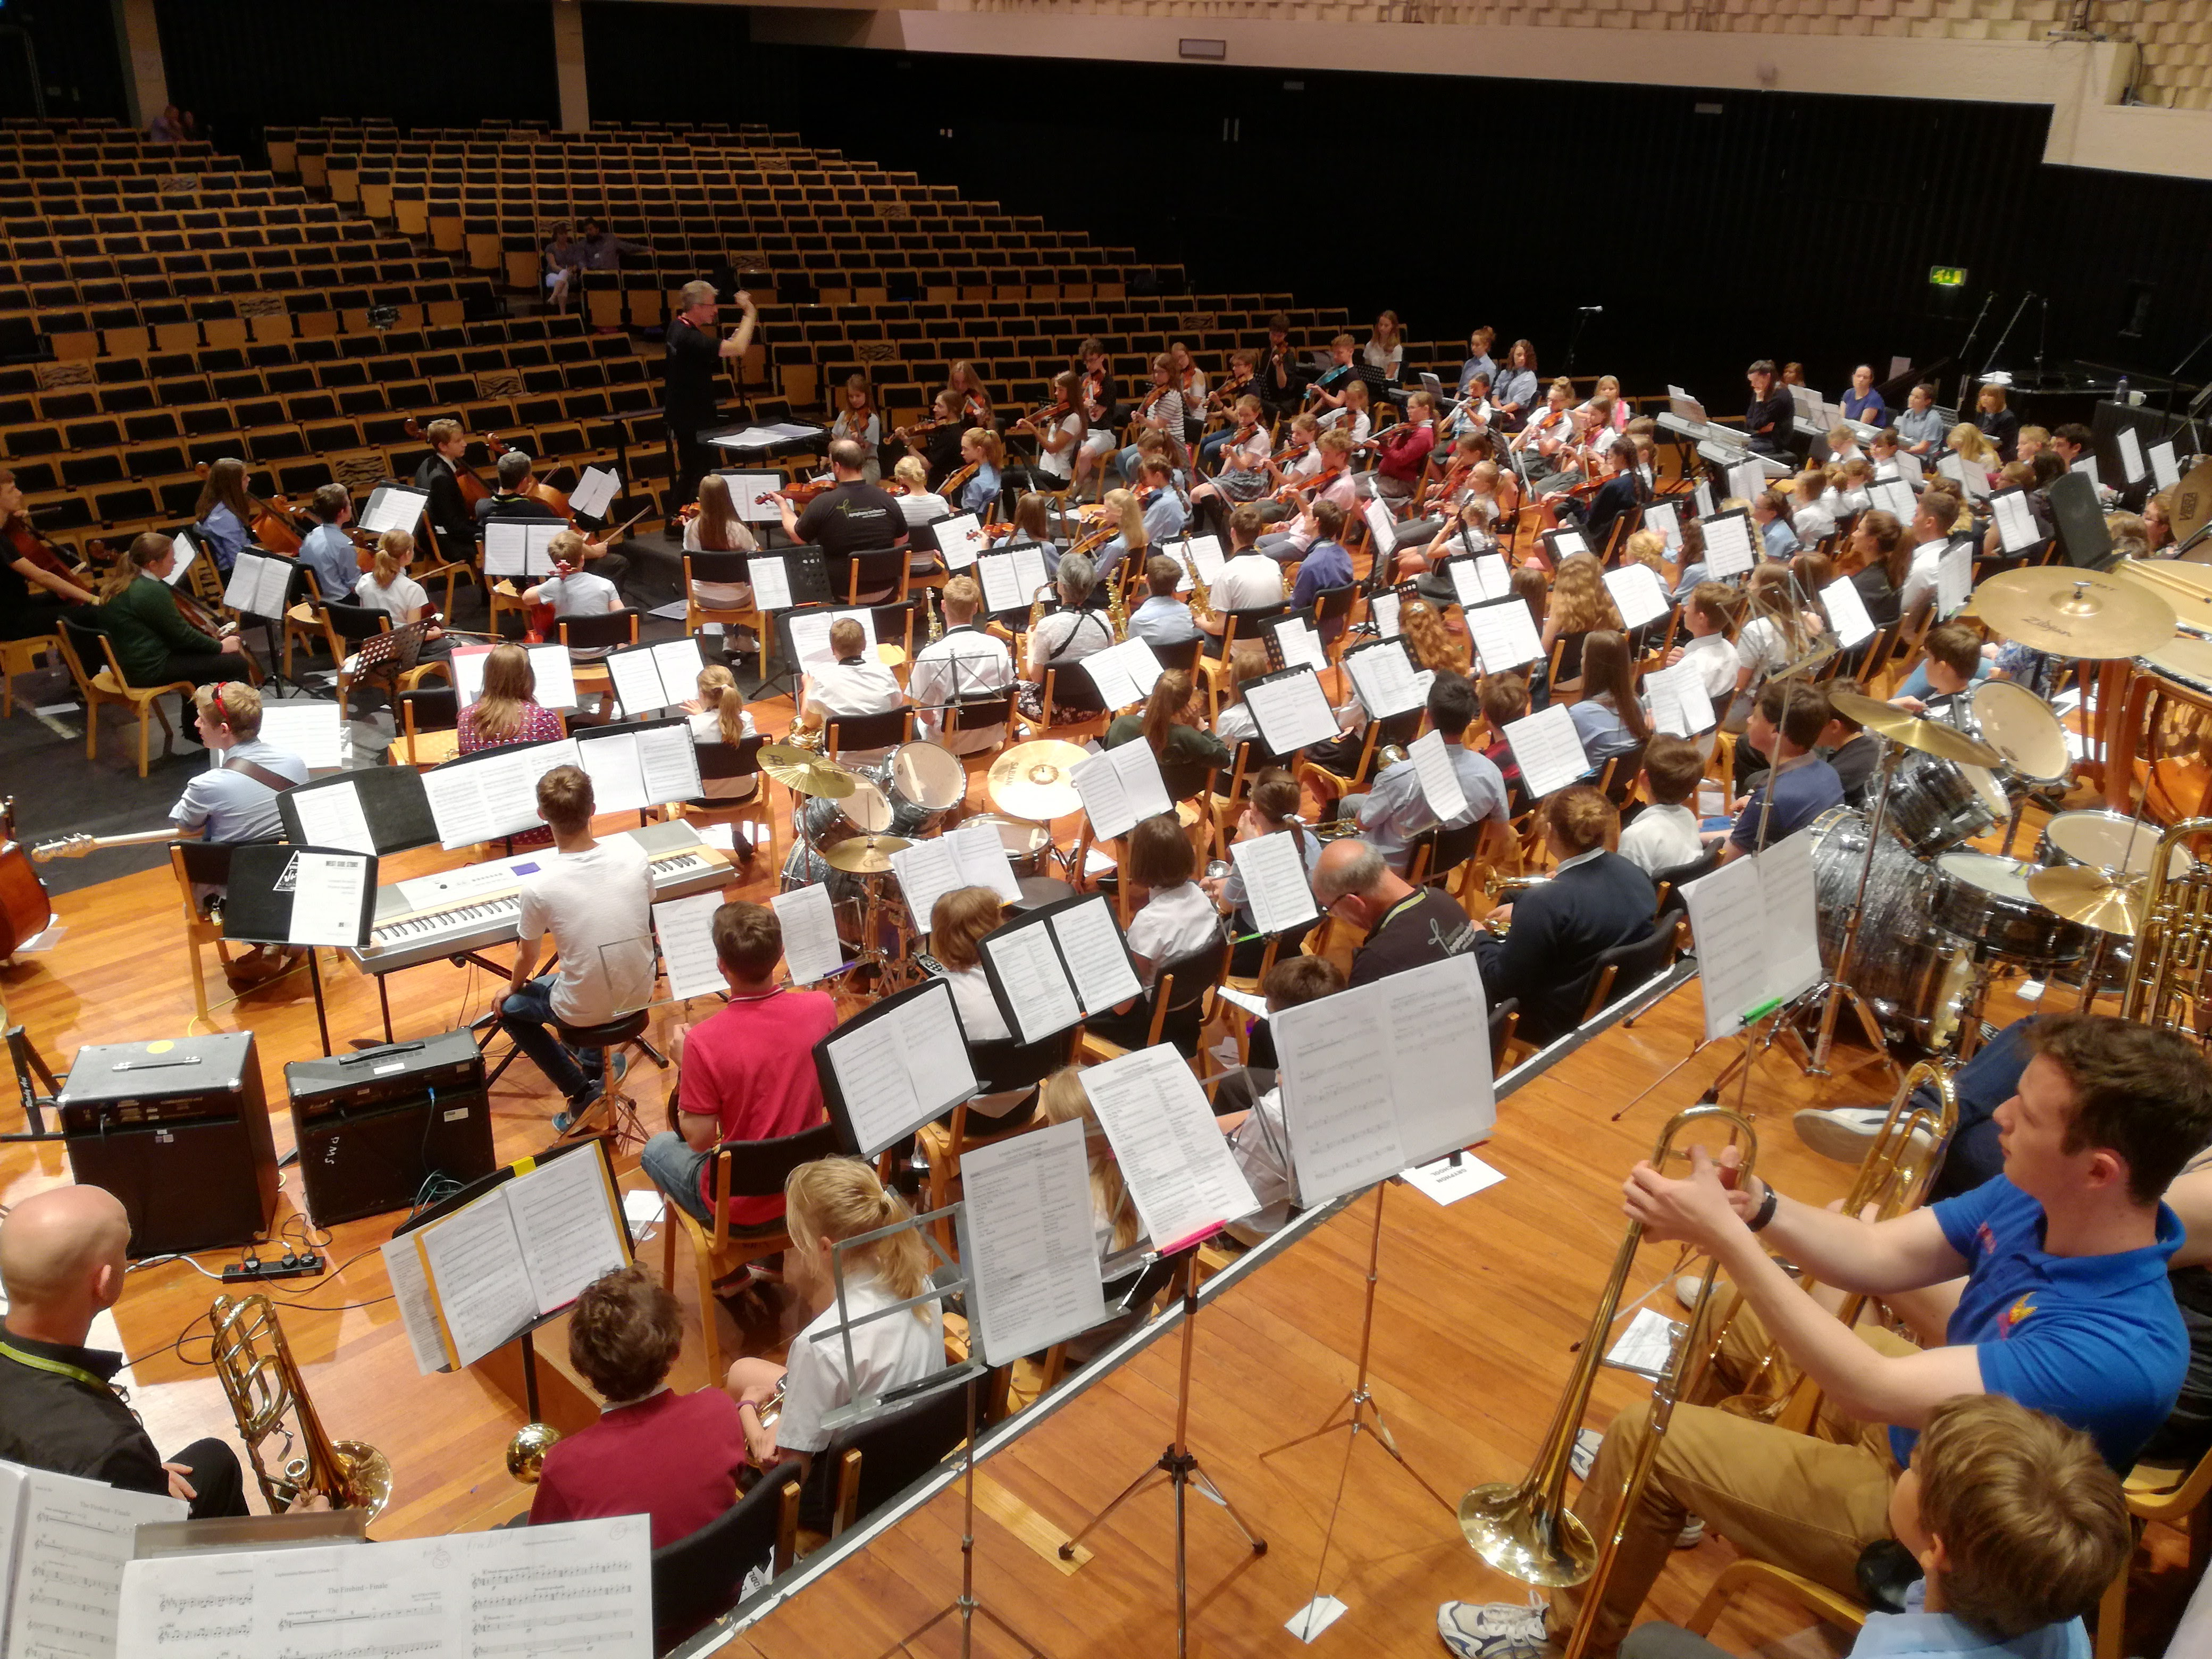 4606Work Experience opportunity at the BSO